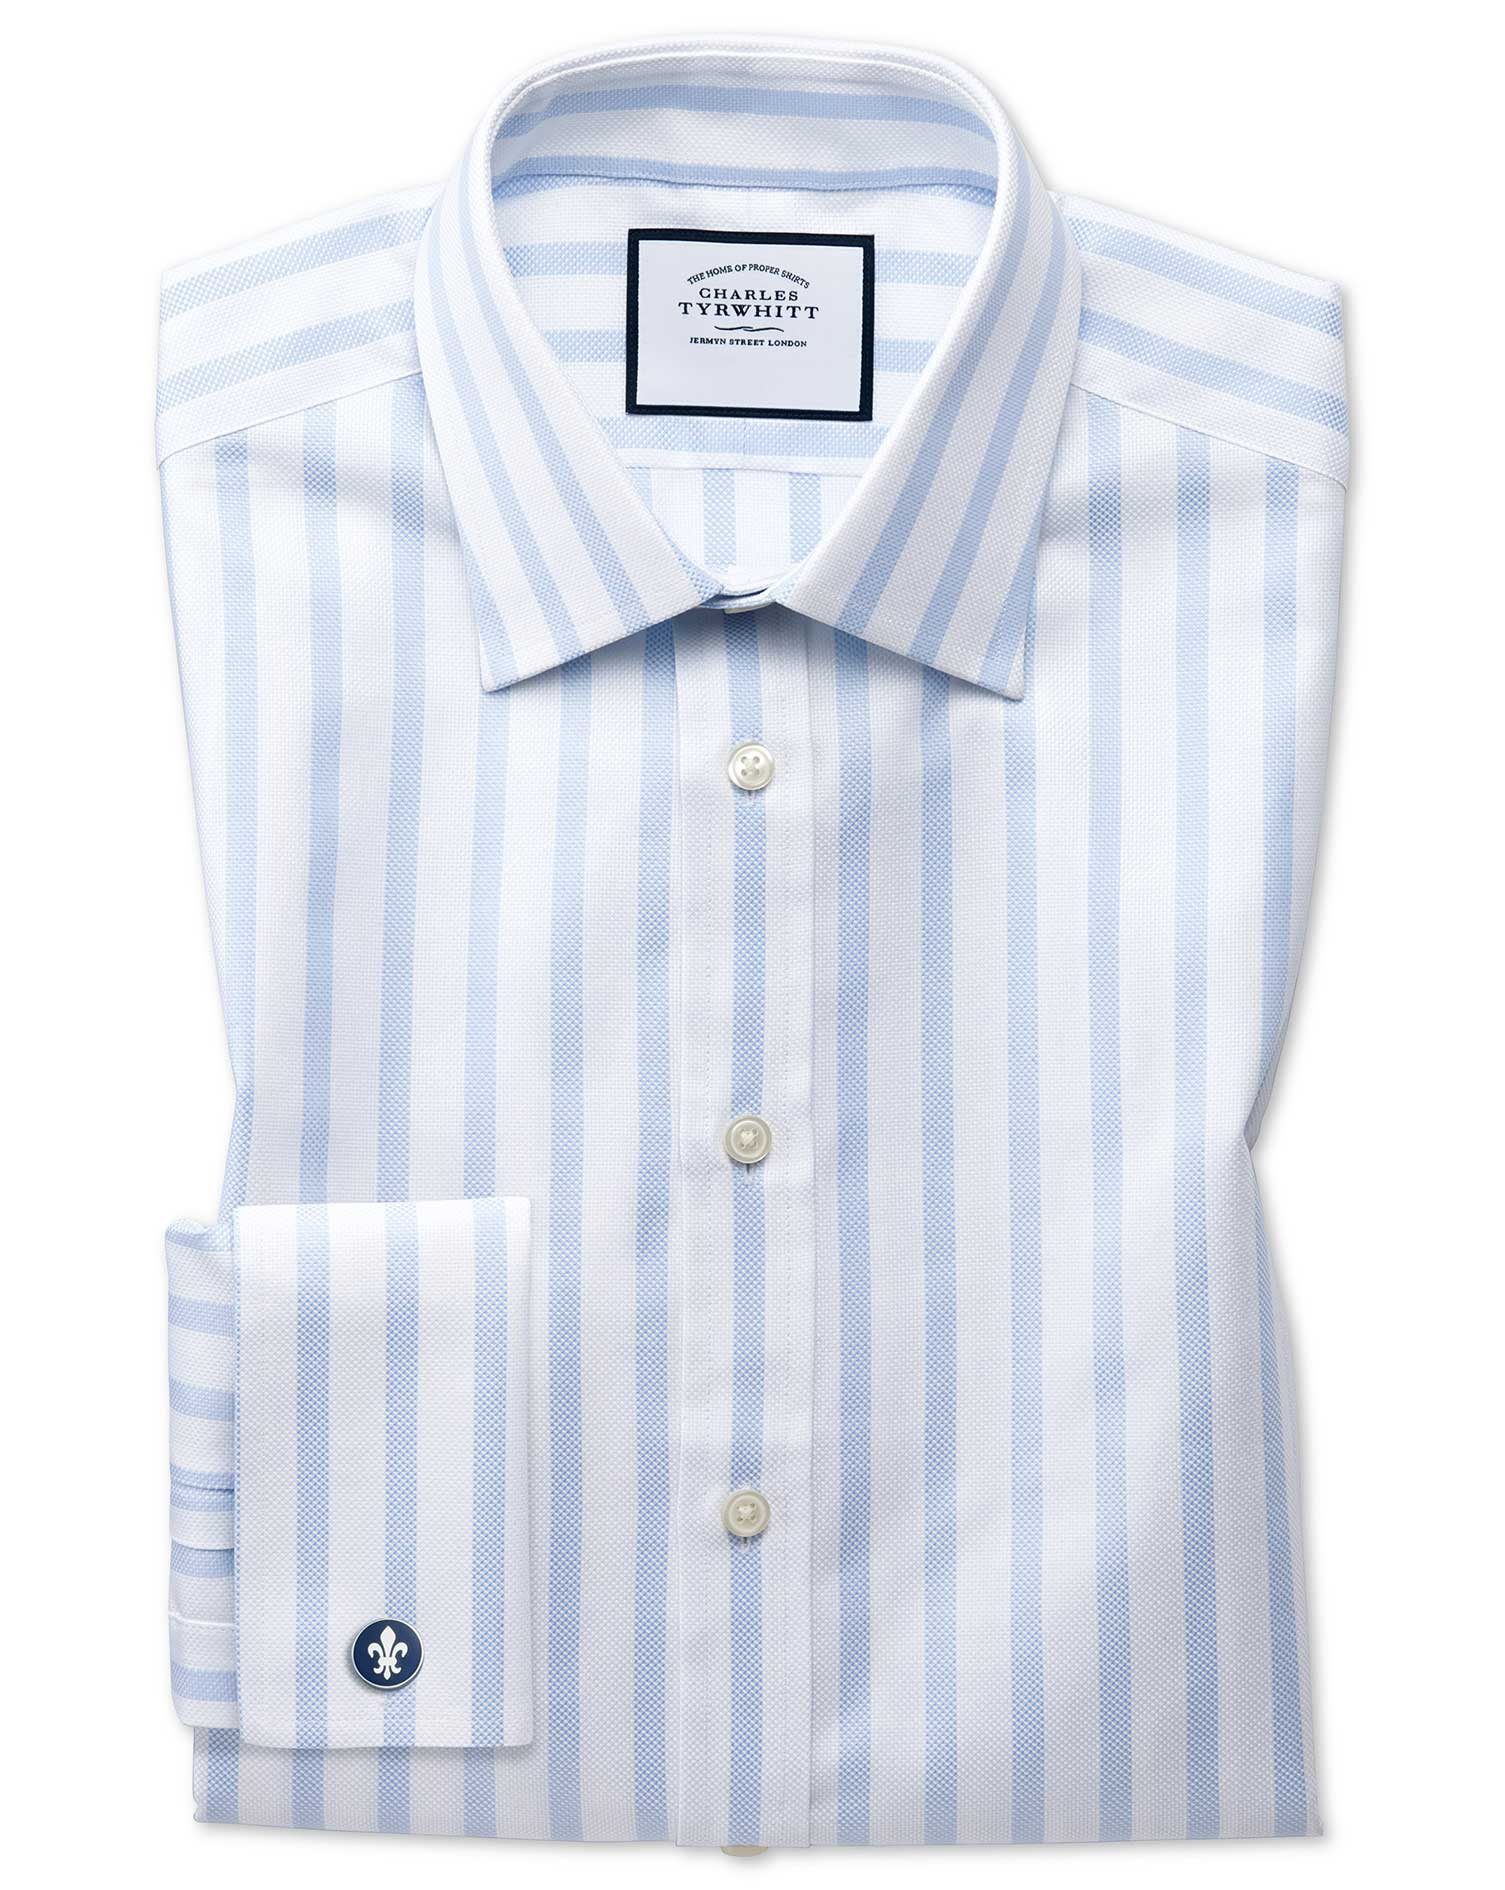 Classic Fit Egyptian Cotton Royal Oxford Sky Blue Stripe Formal Shirt Single Cuff Size 17.5/34 by Ch